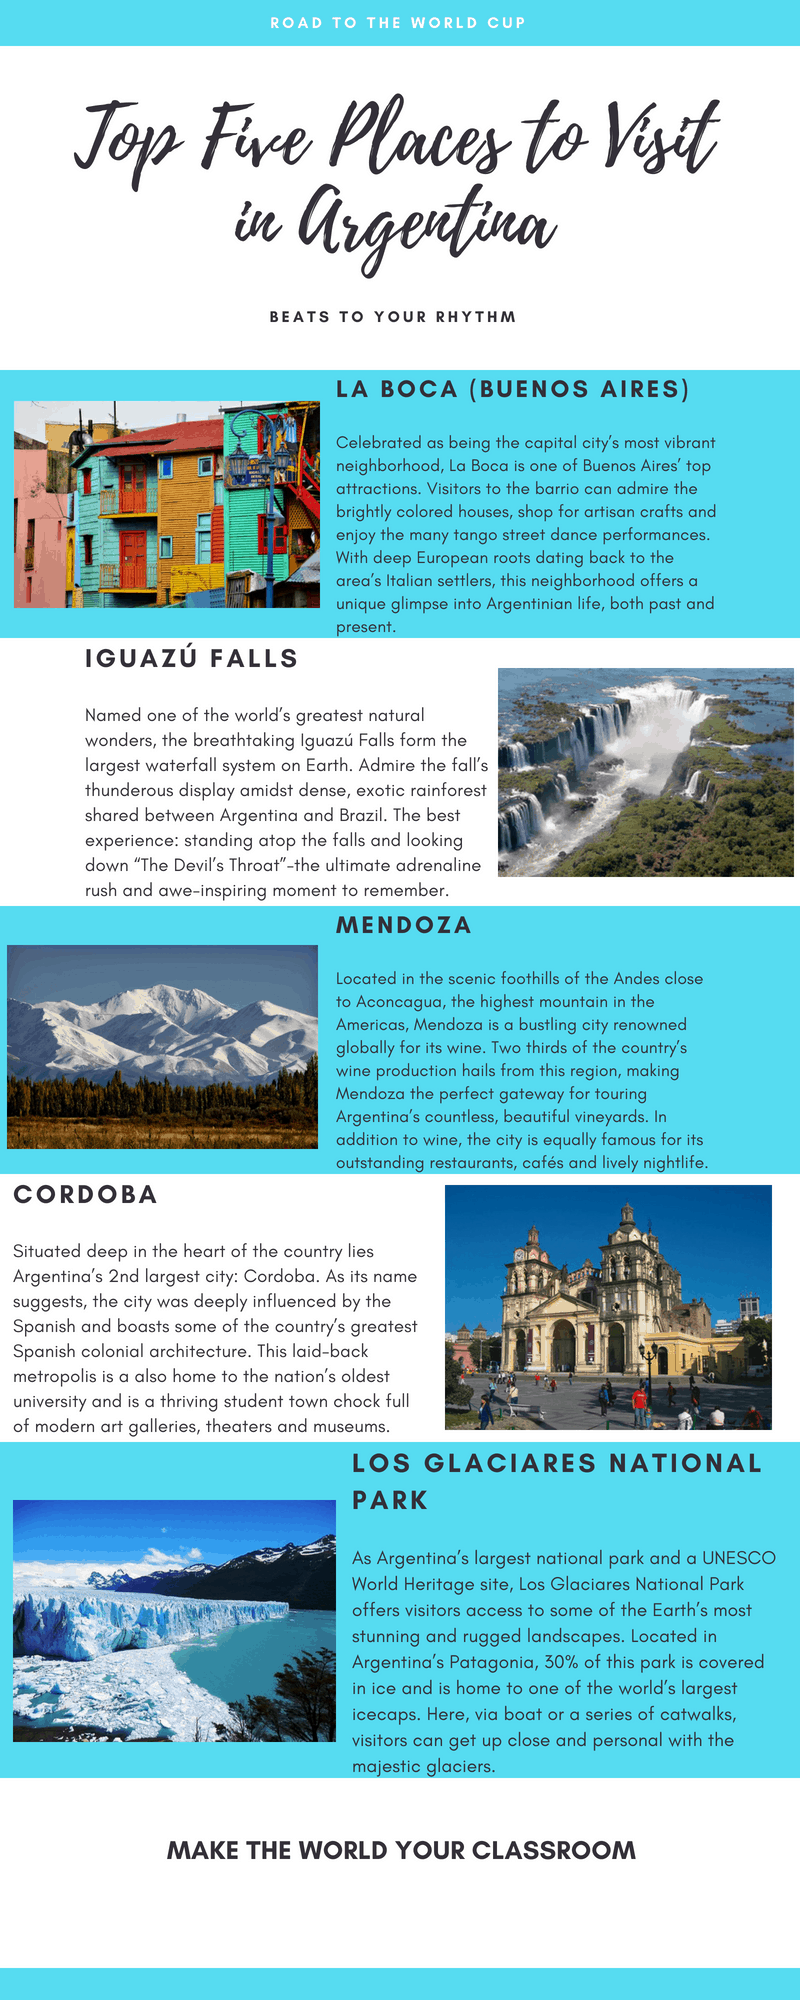 Top Five Places to Visit in Argentina